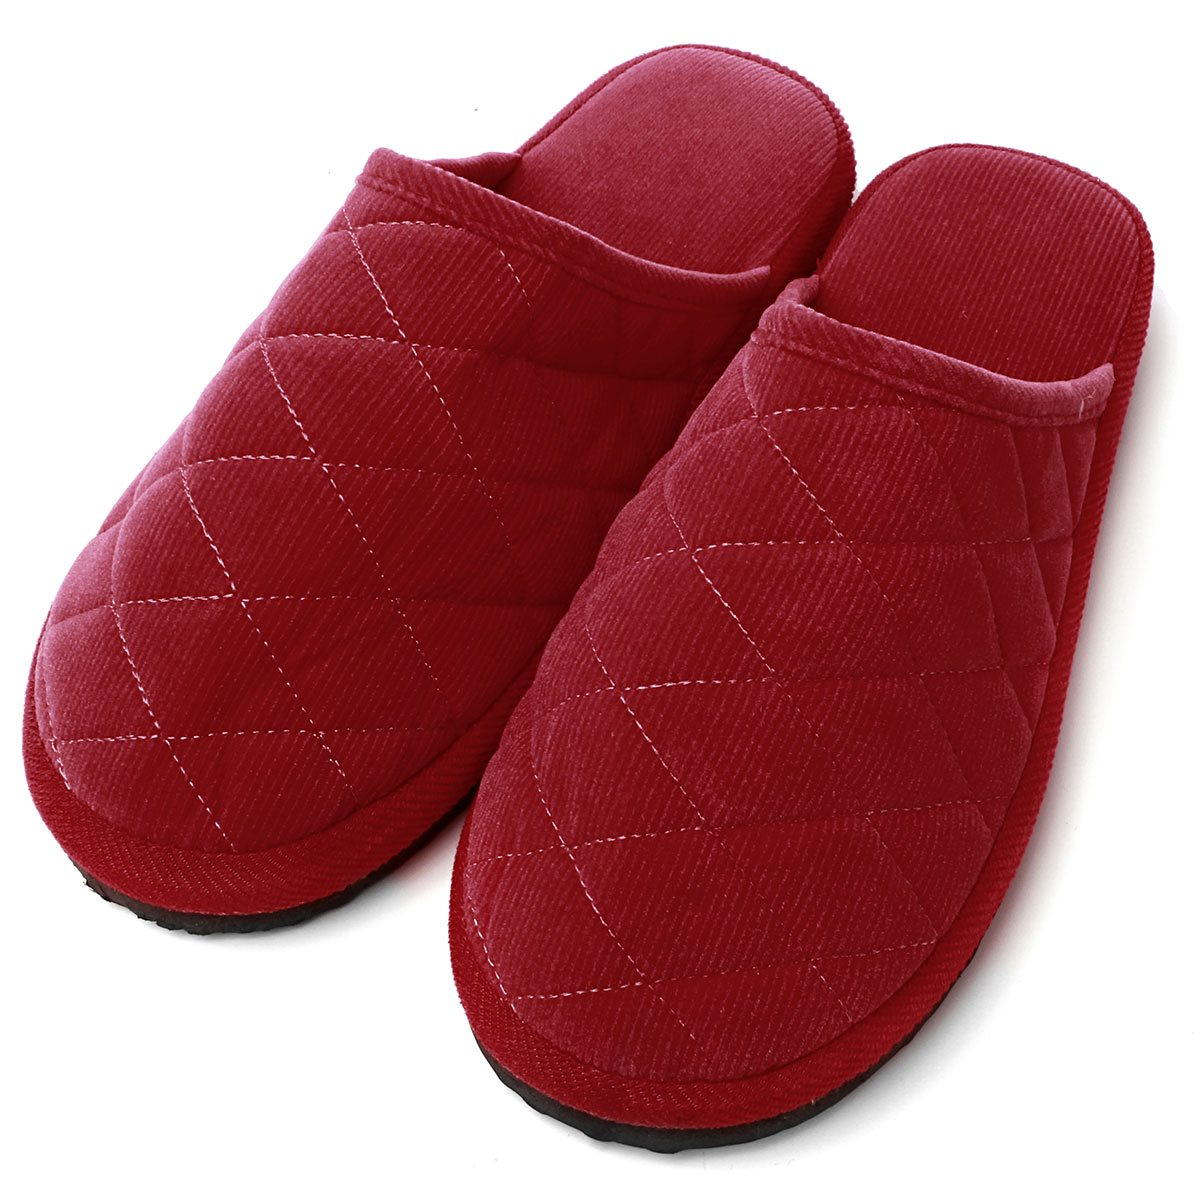 Big Sale Women Shoes Knit Plaid Cotton Plush Indoor Slippers New Casual Couple Home House Floor Slippers Woman Pantufas(China (Mainland))